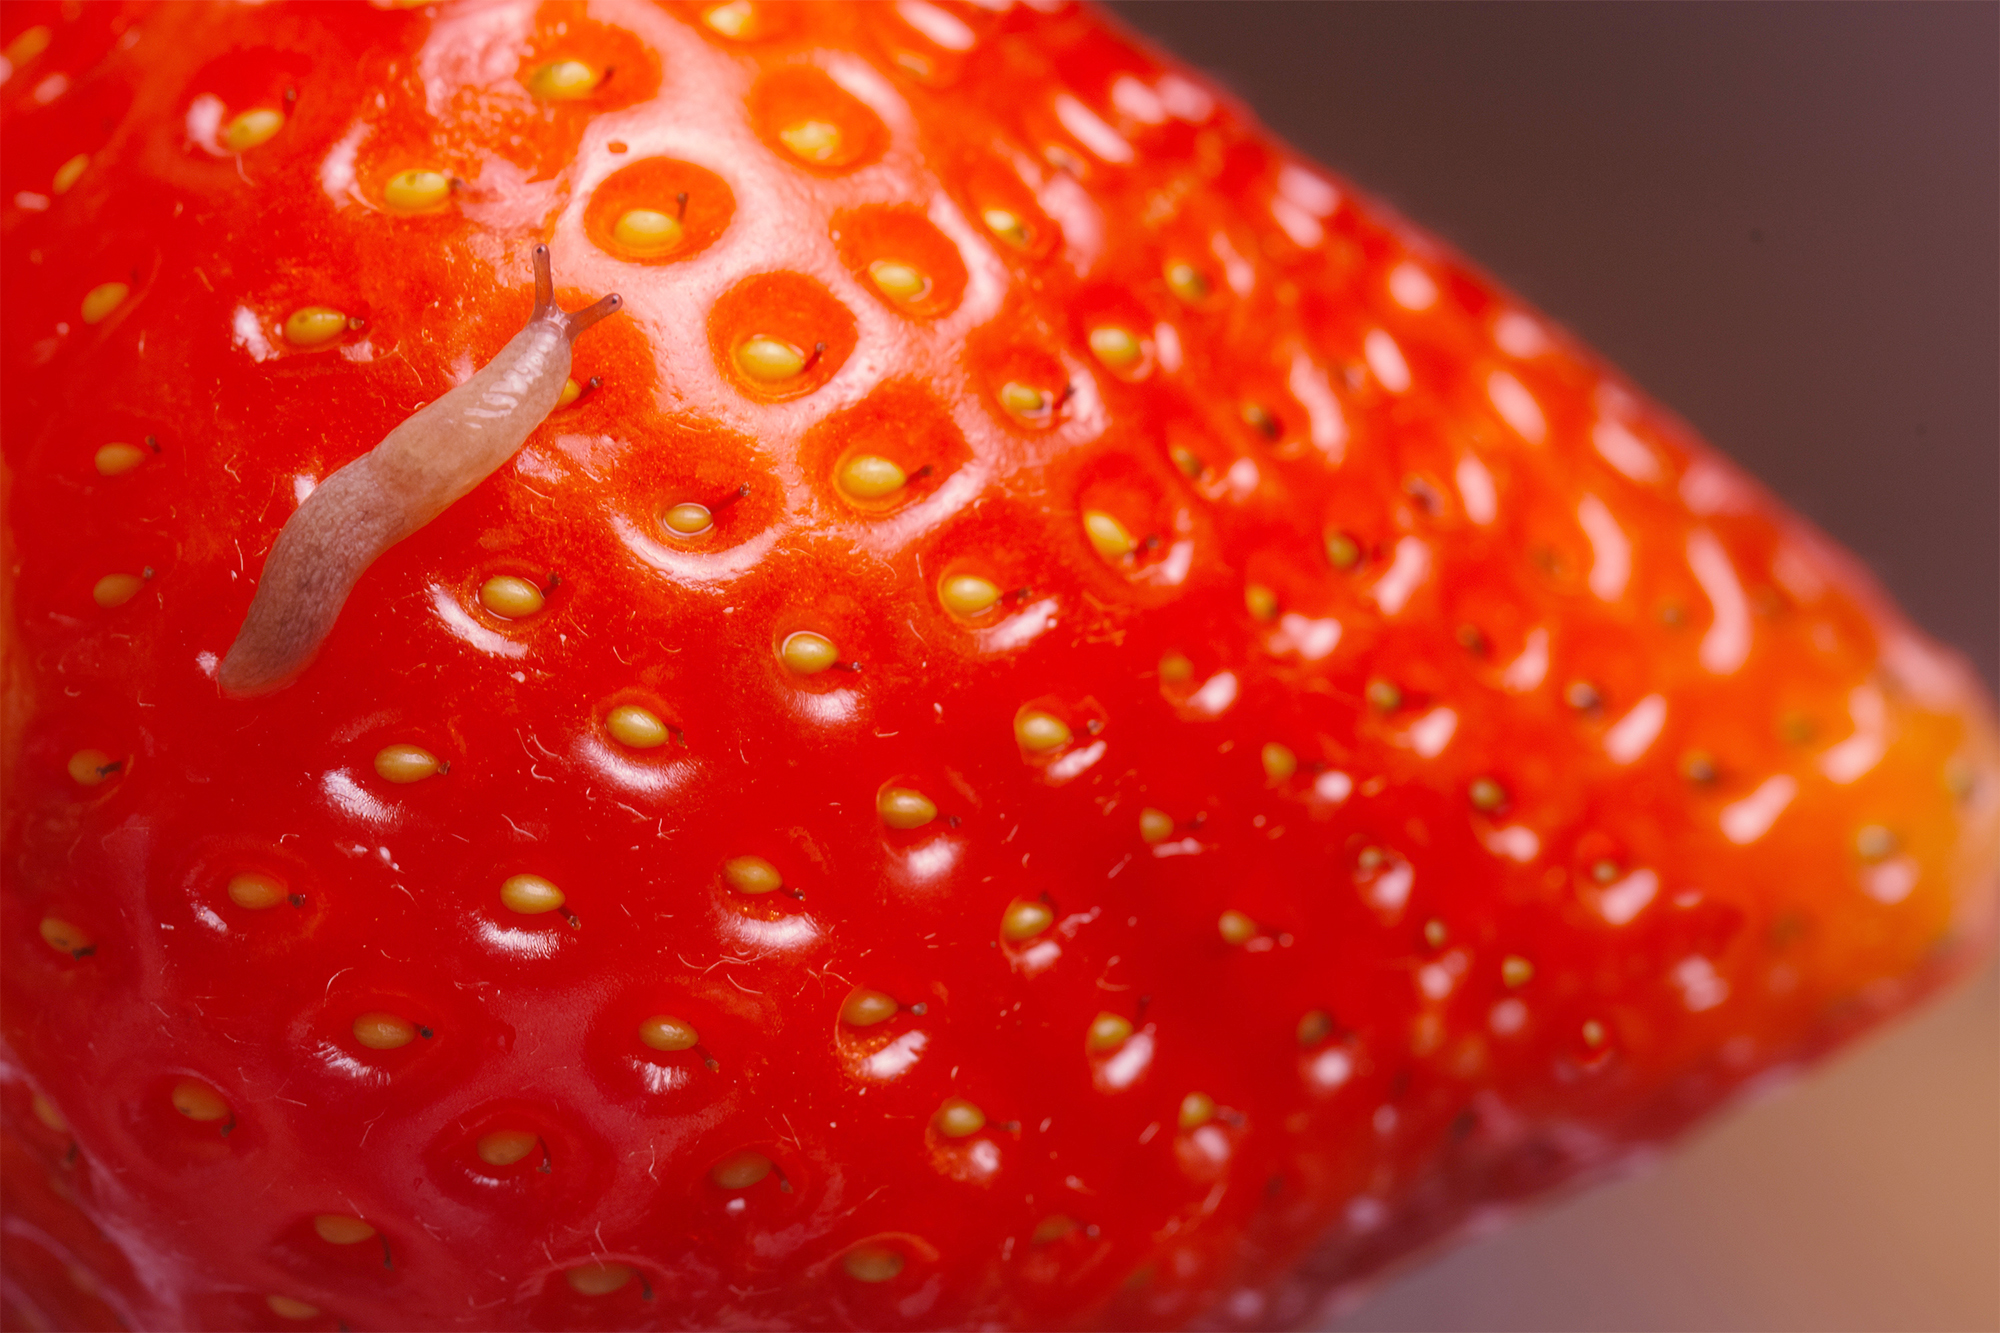 Strawberry with worm